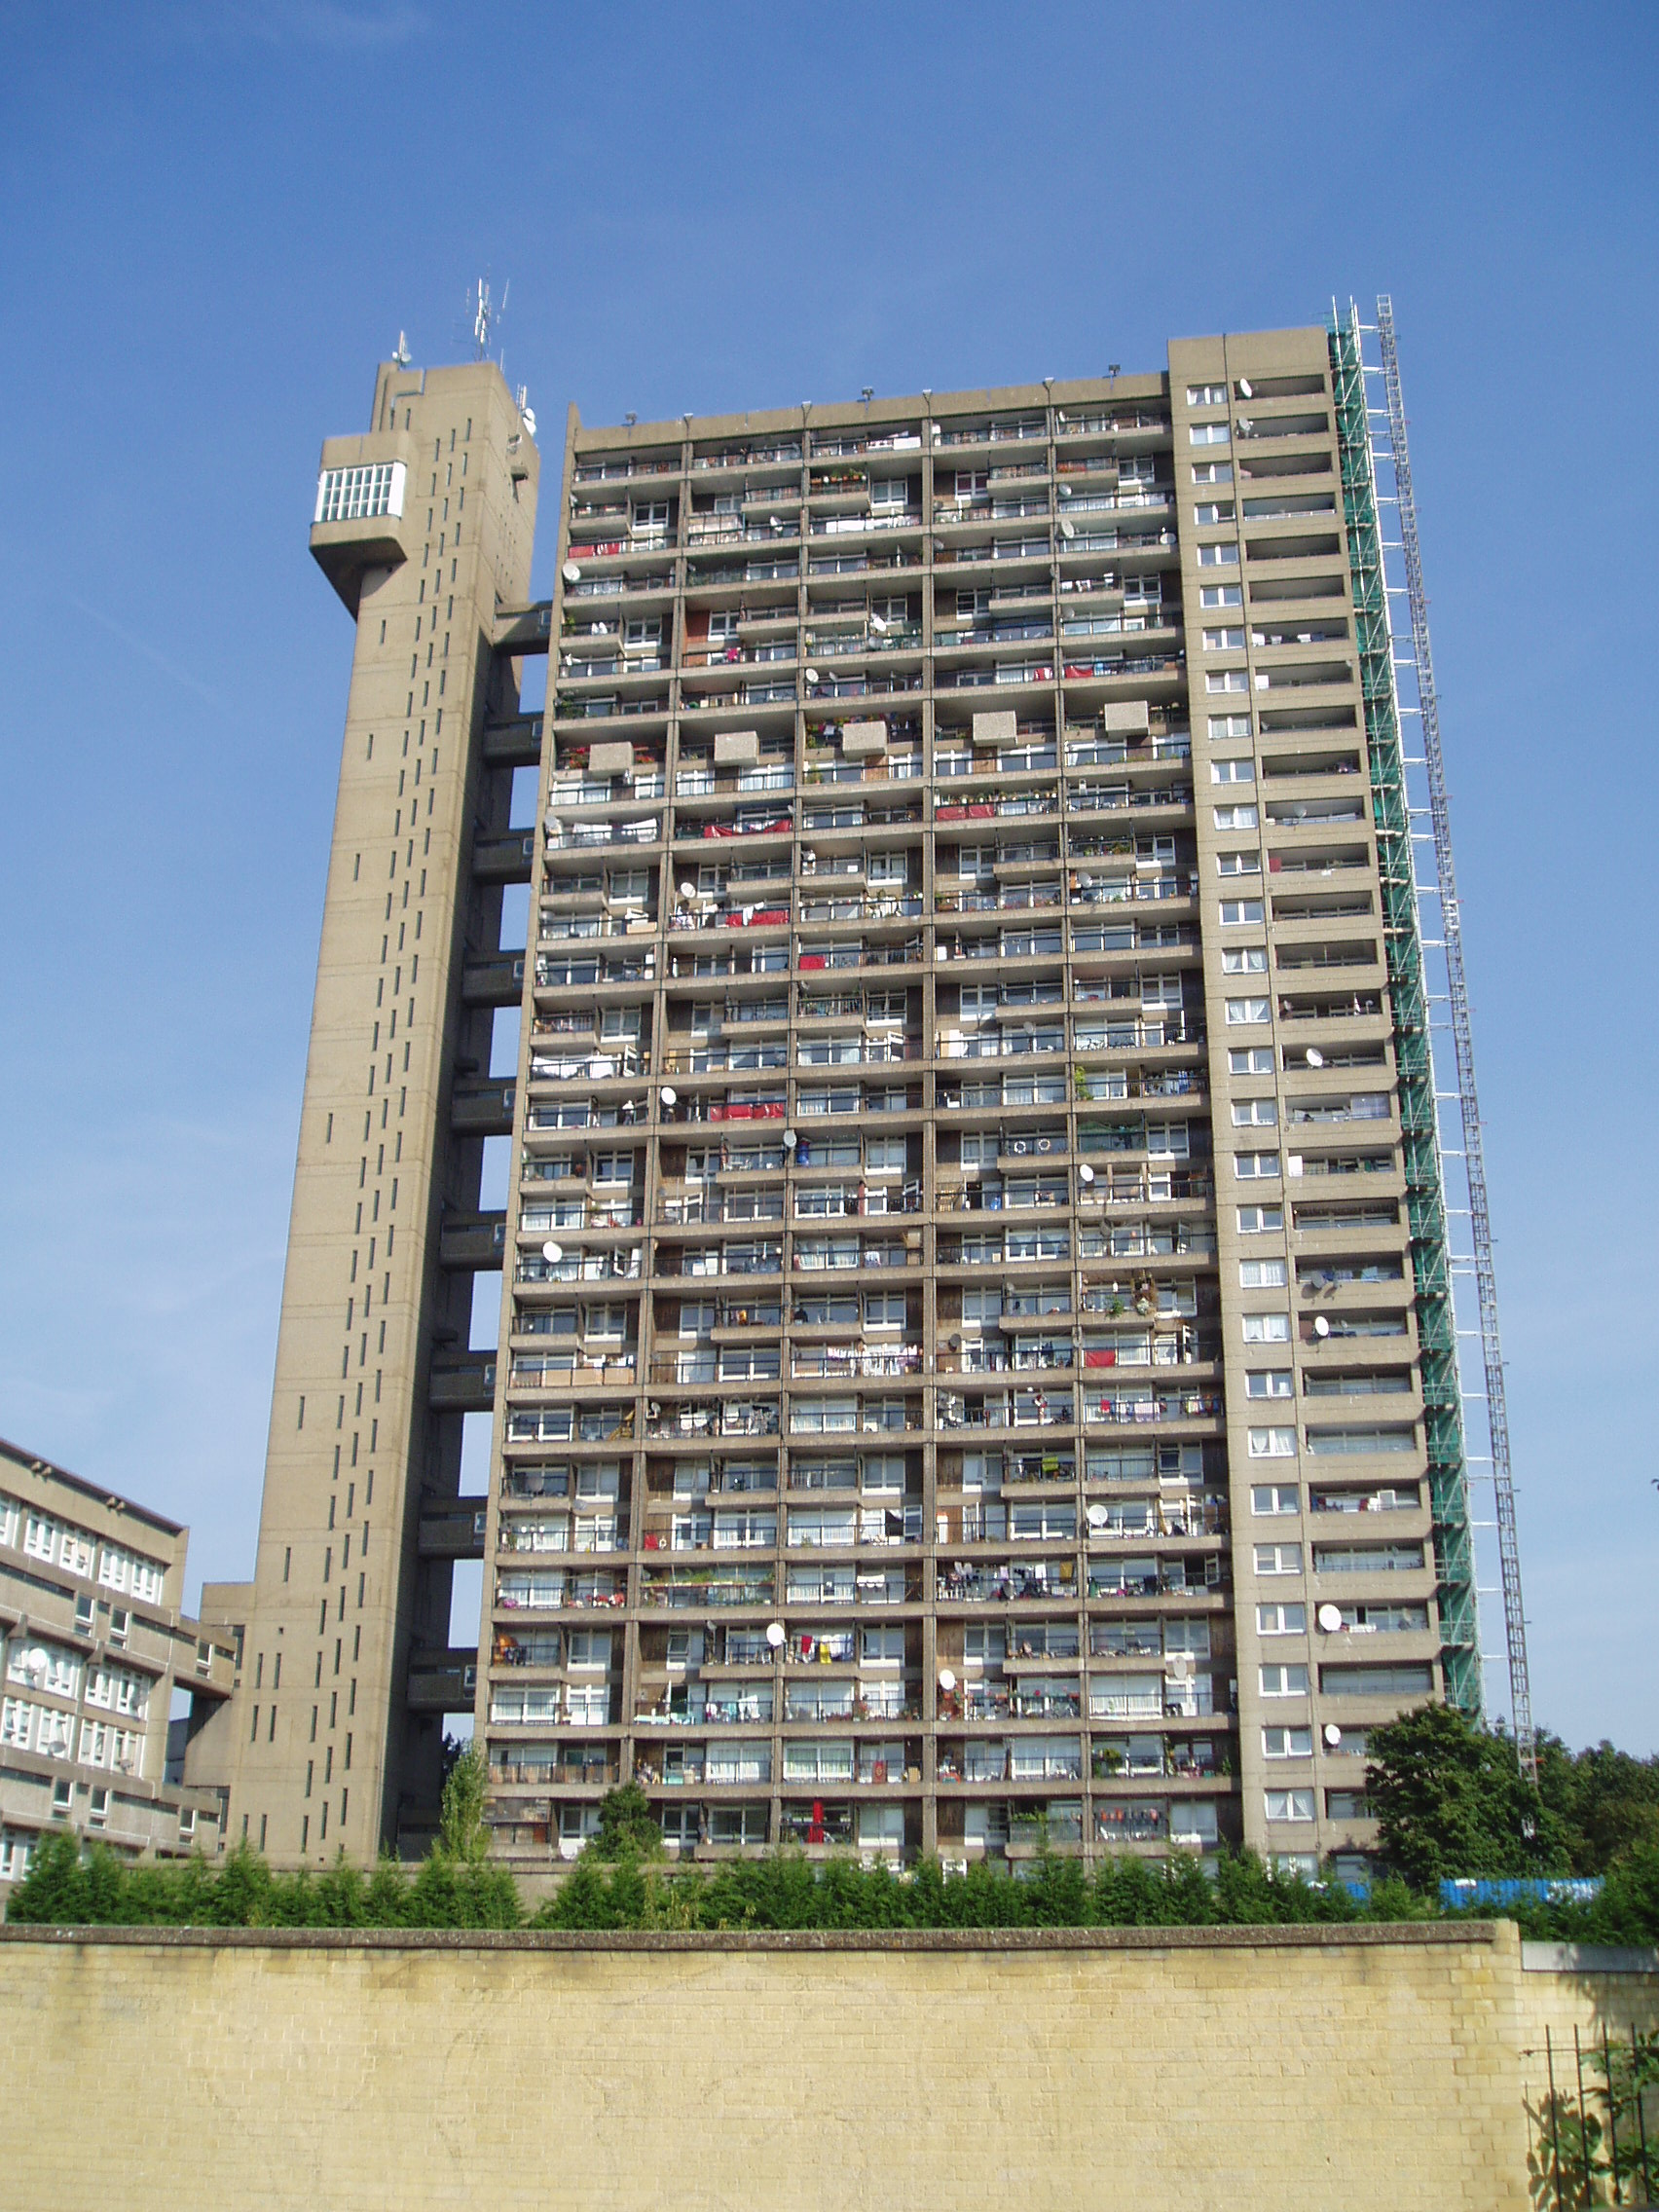 Fascist Architecture In Relation To Modernism Zsarkitecture